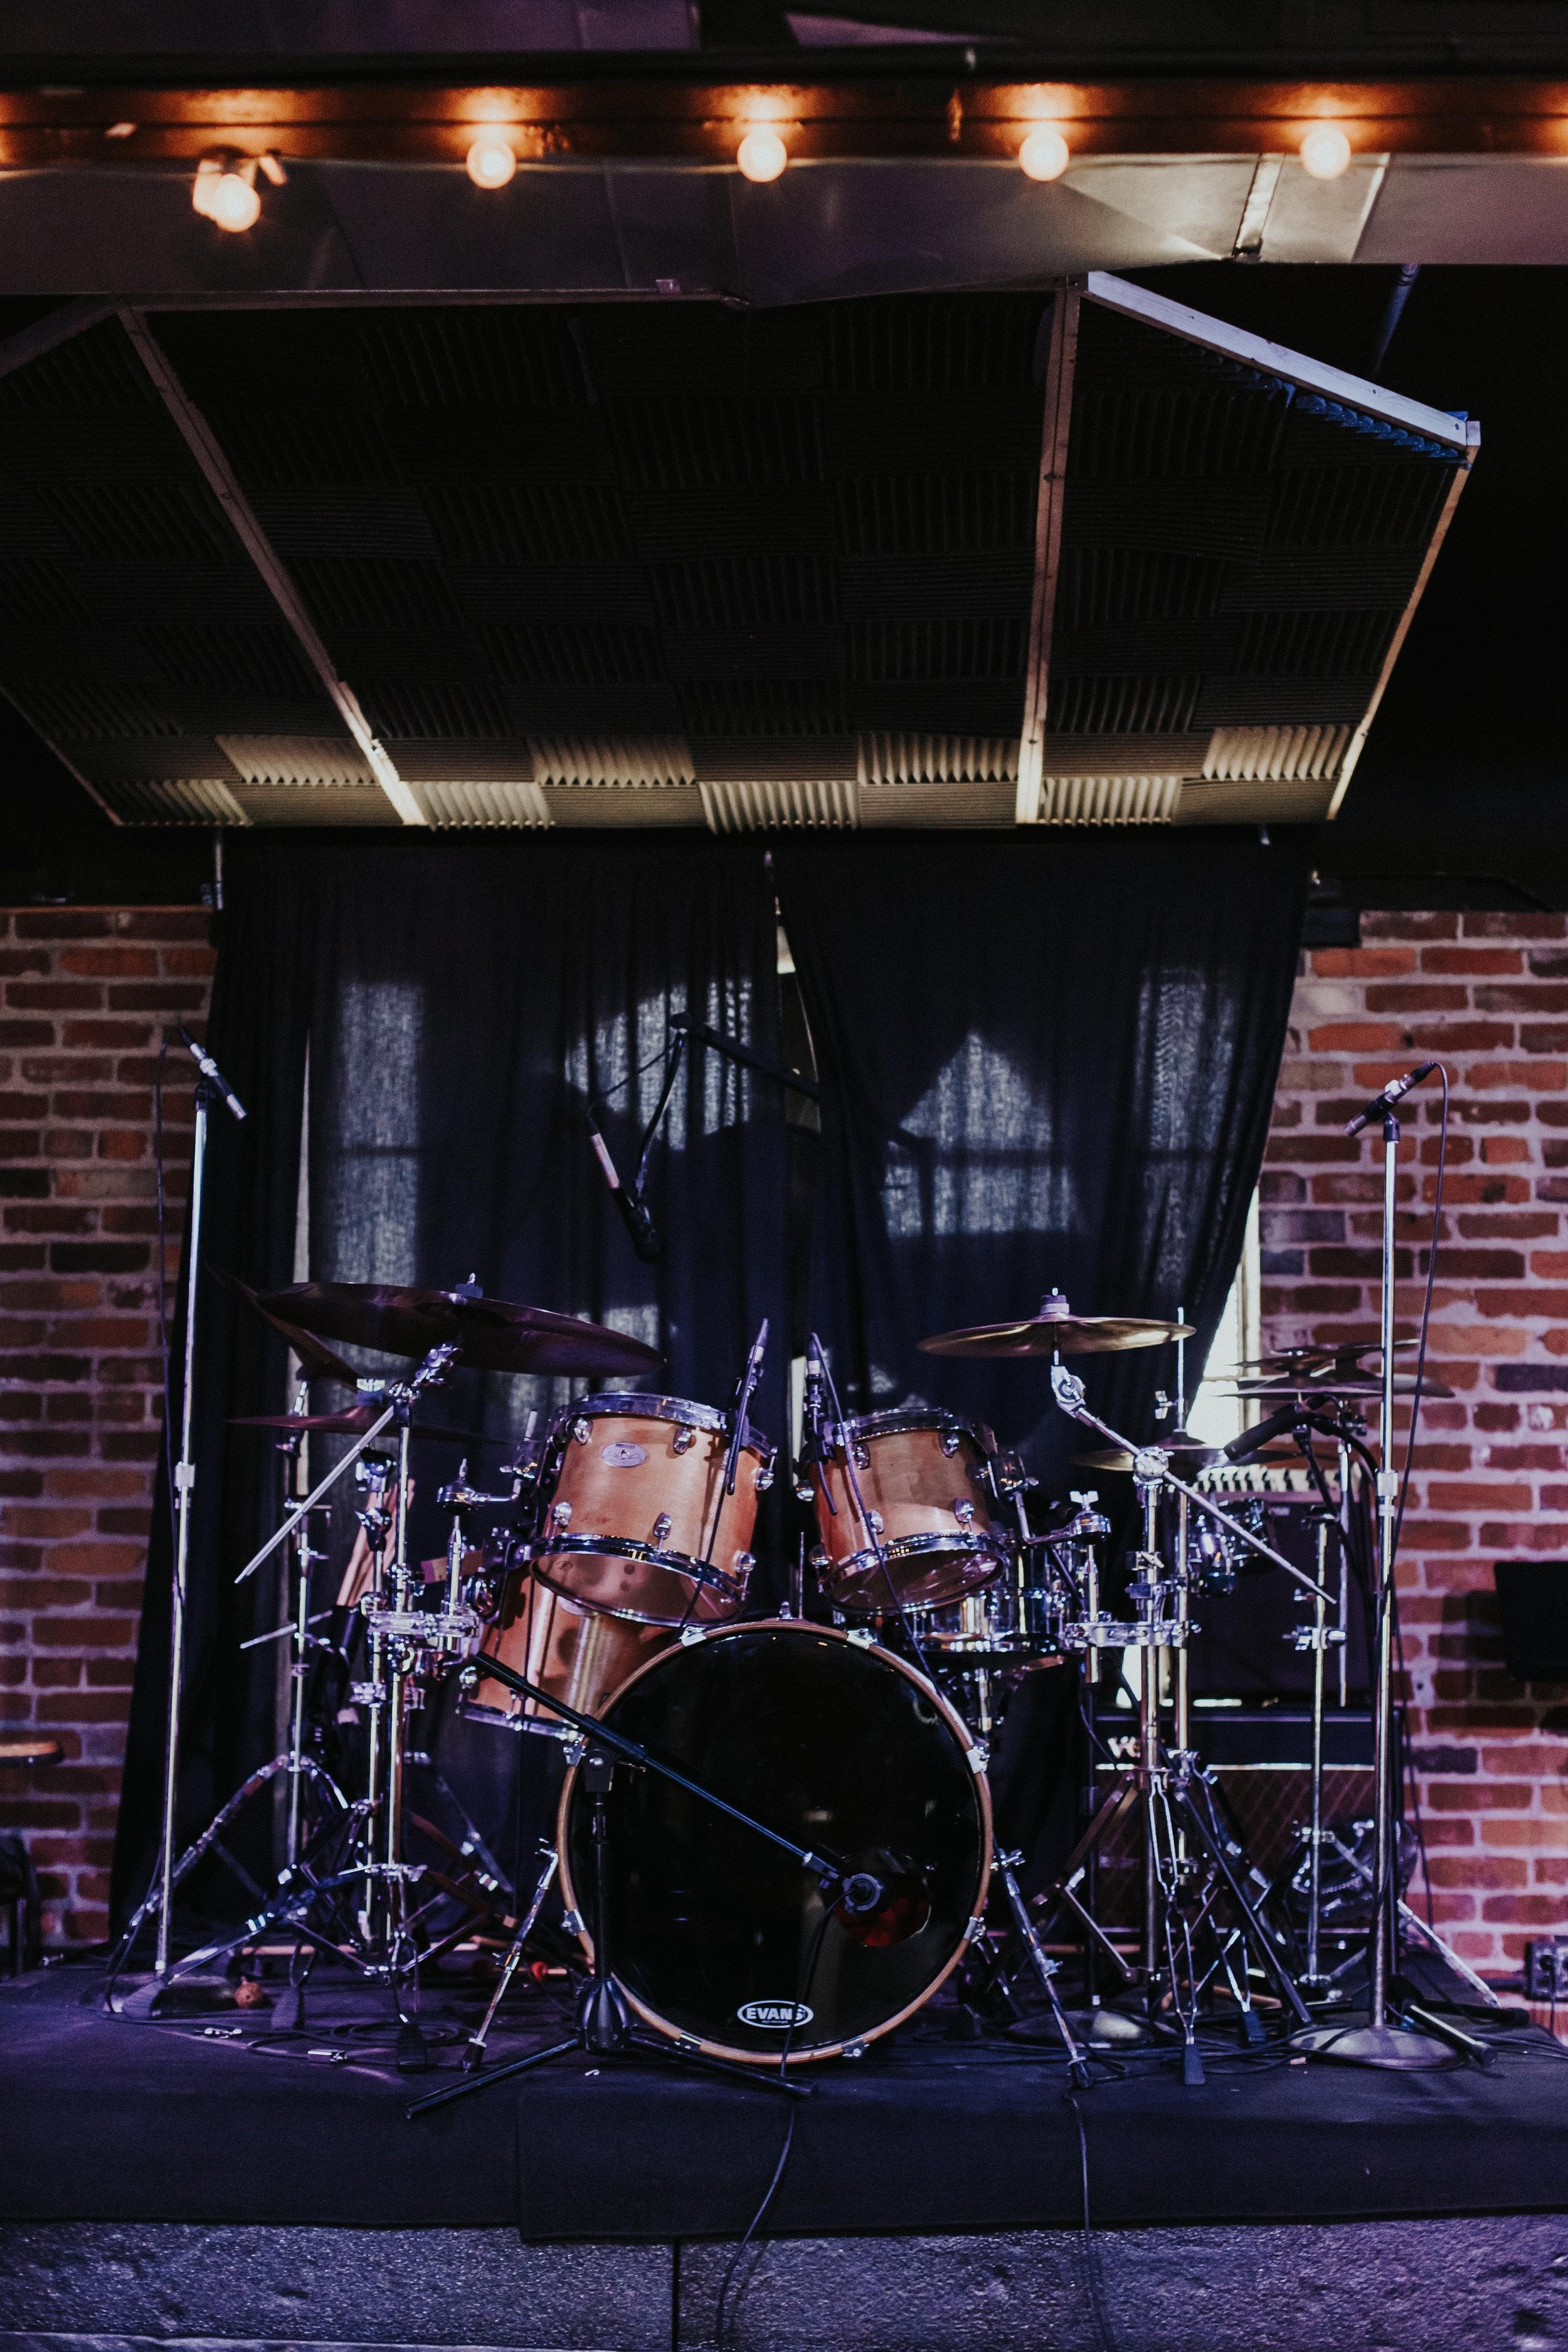 Sound Equipement - Our stage is equipped with professional monitors, speakers, microphones, amps, a drum set, and a keyboard.*contact us for more info